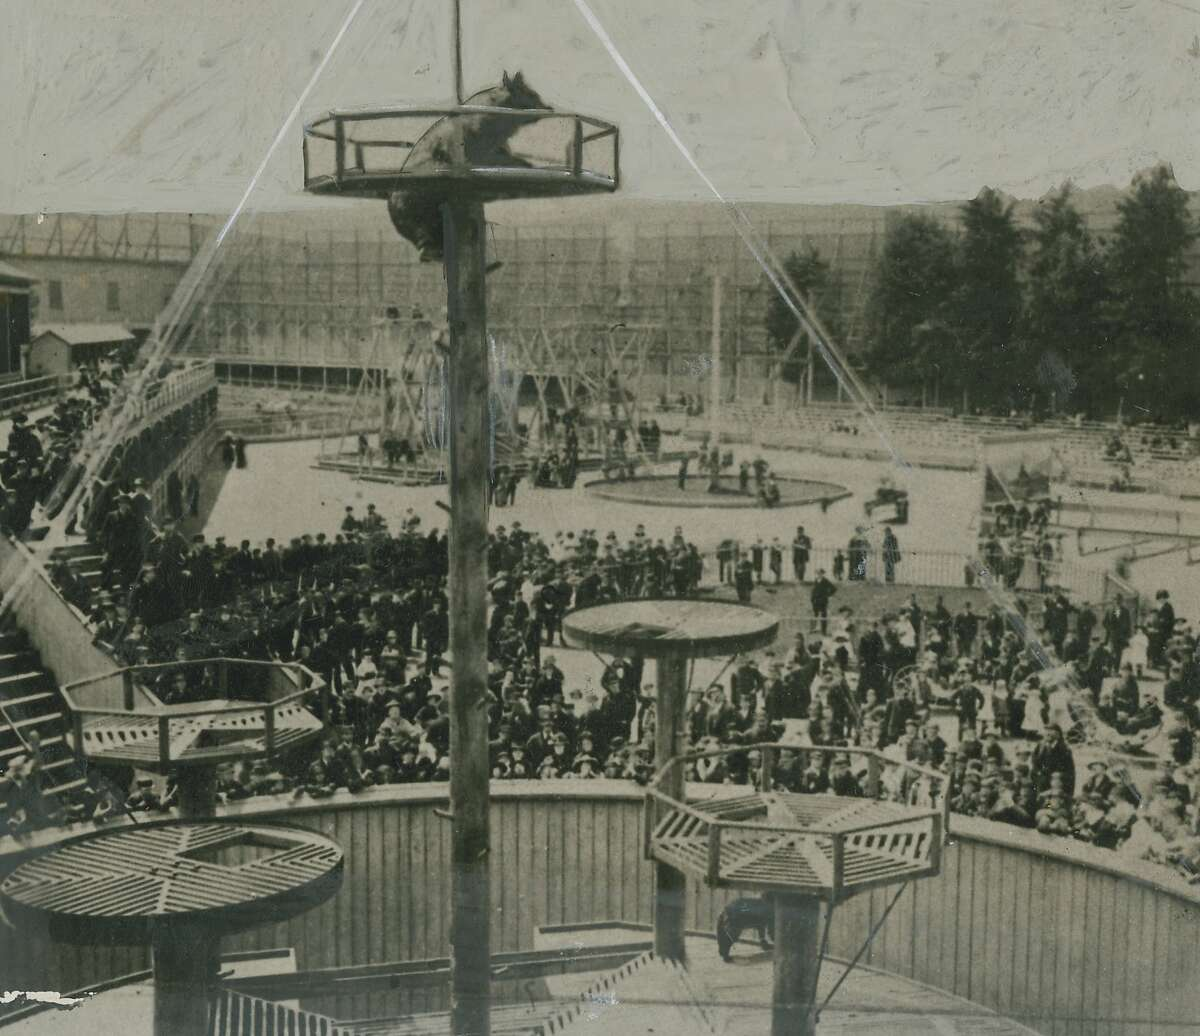 Bear pit at Woodward's Garden, which was at 13th and Mission Streets, and covered 5 acres. The park ran from 1866 to 1891. Photographer unknown.